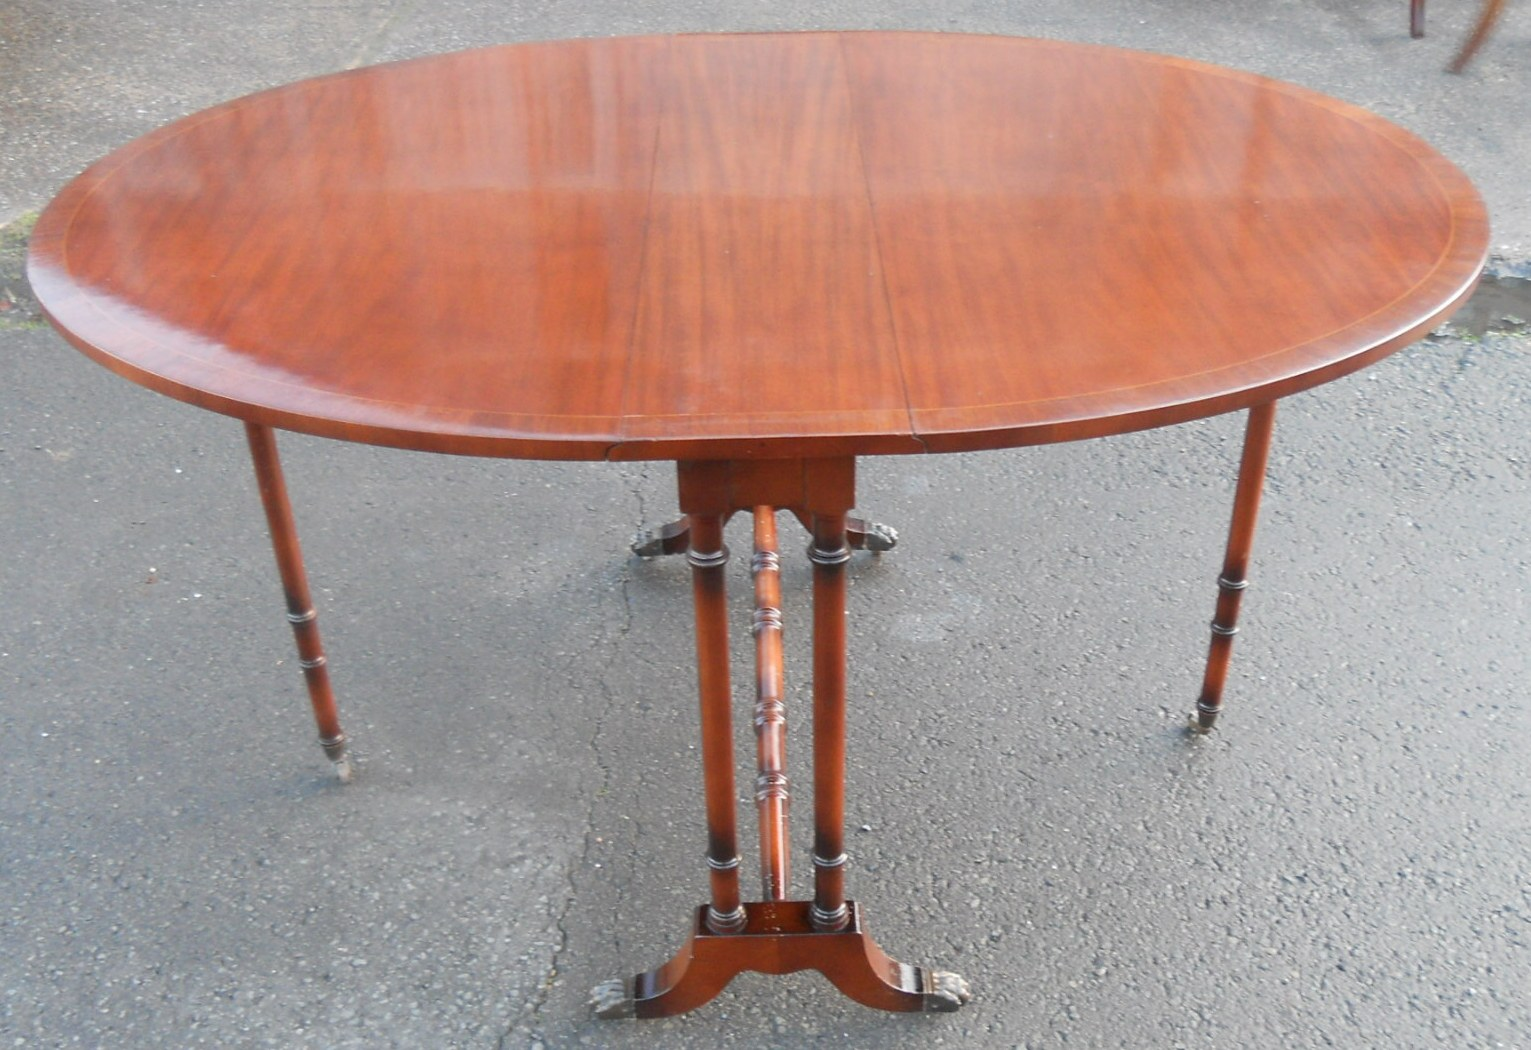 Oval Dining Table For 6 : oval mahogany dropleaf dining table to seat six sold 4 3605 p from hwiki.us size 1531 x 1050 jpeg 347kB